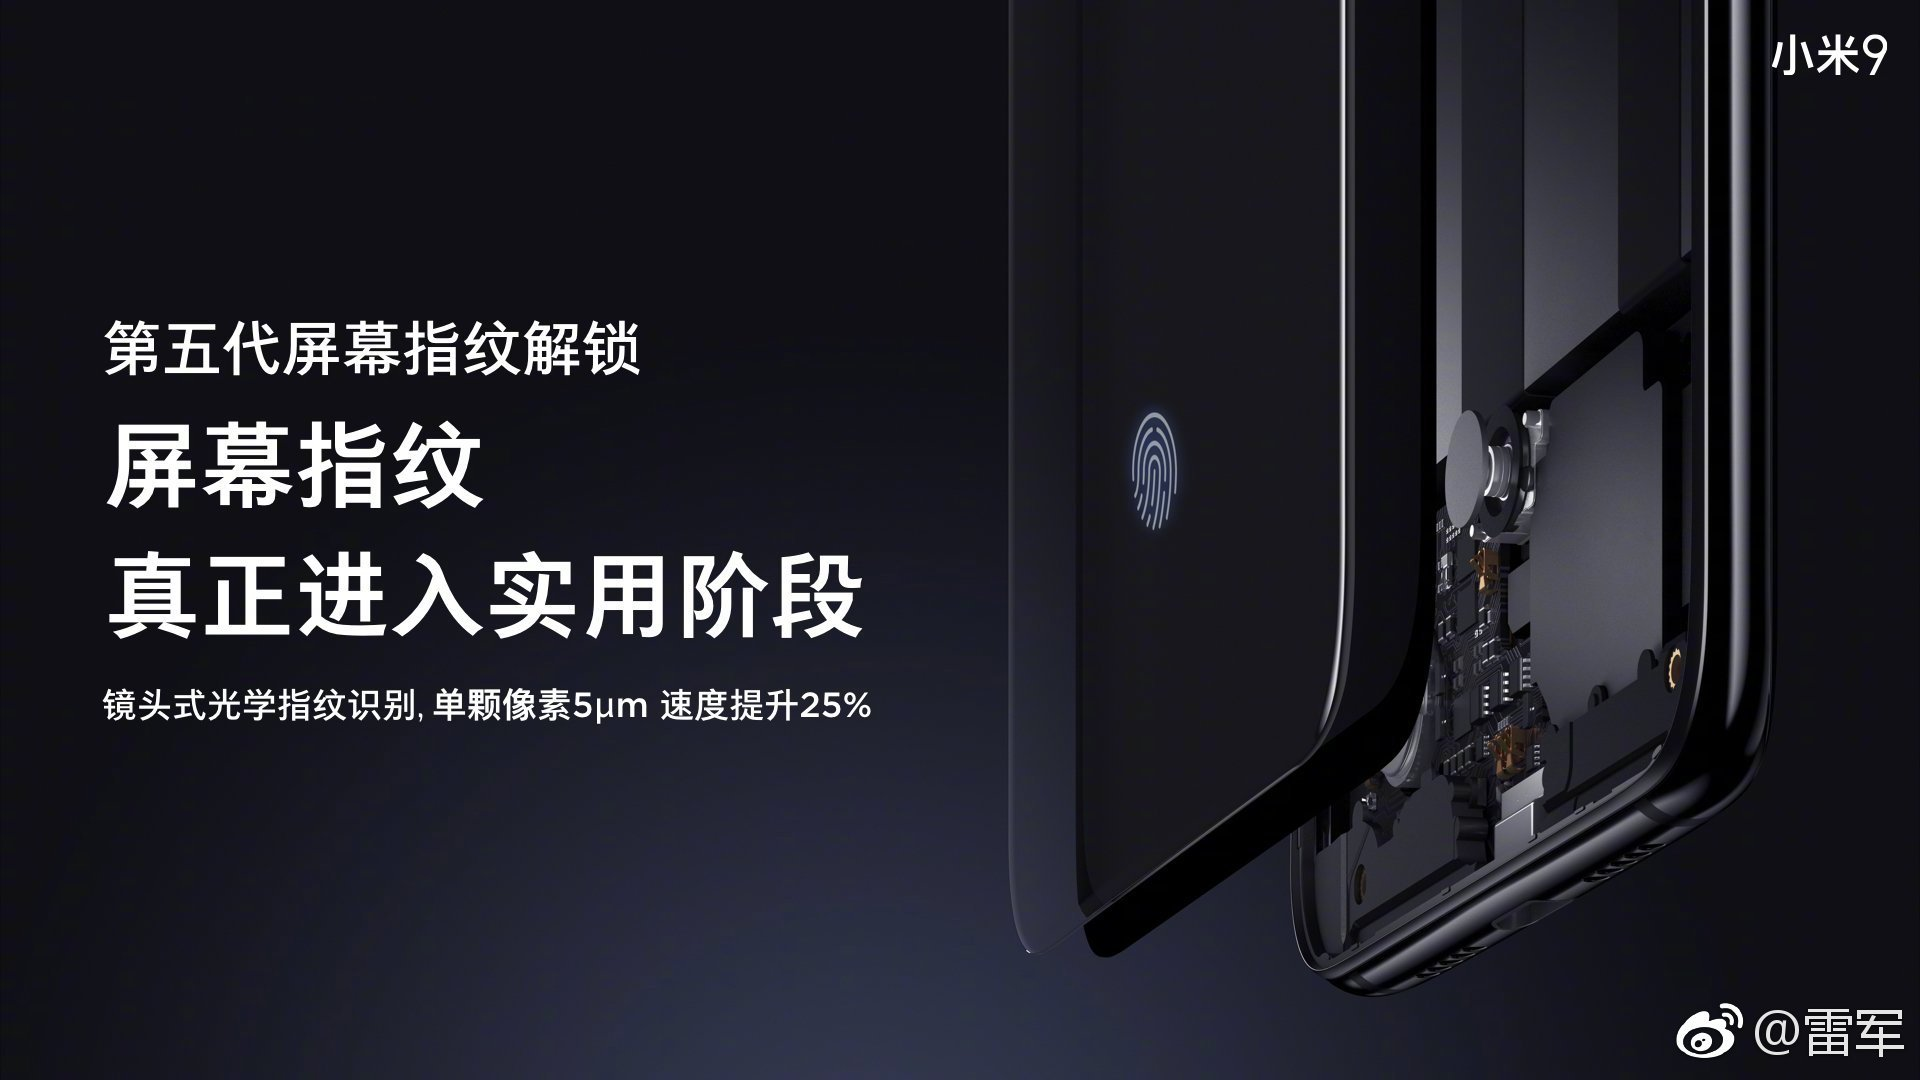 Xiaomi 9 will use Samsung AMOLED Display with Fastest In-display fingerprint 2